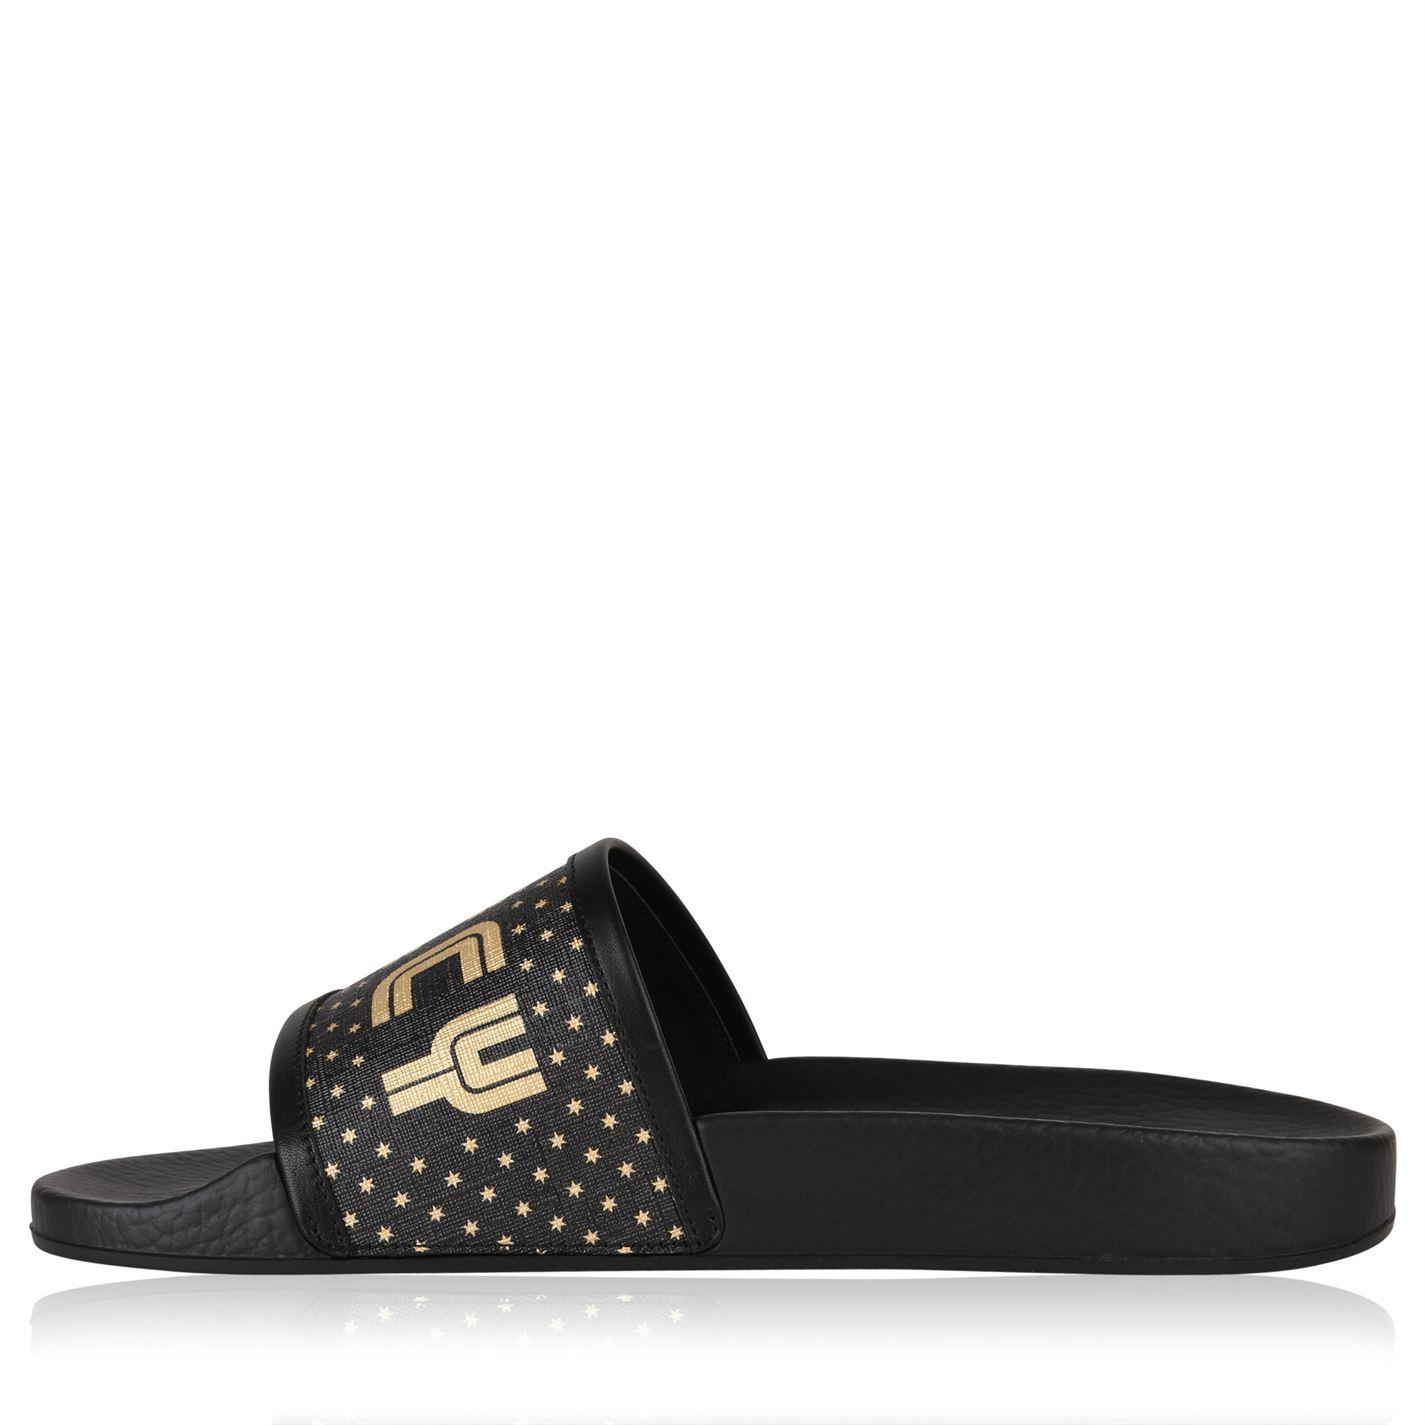 b9d311ad8f7011 Lyst - Gucci Guccy Sliders in Black for Men - Save 71%